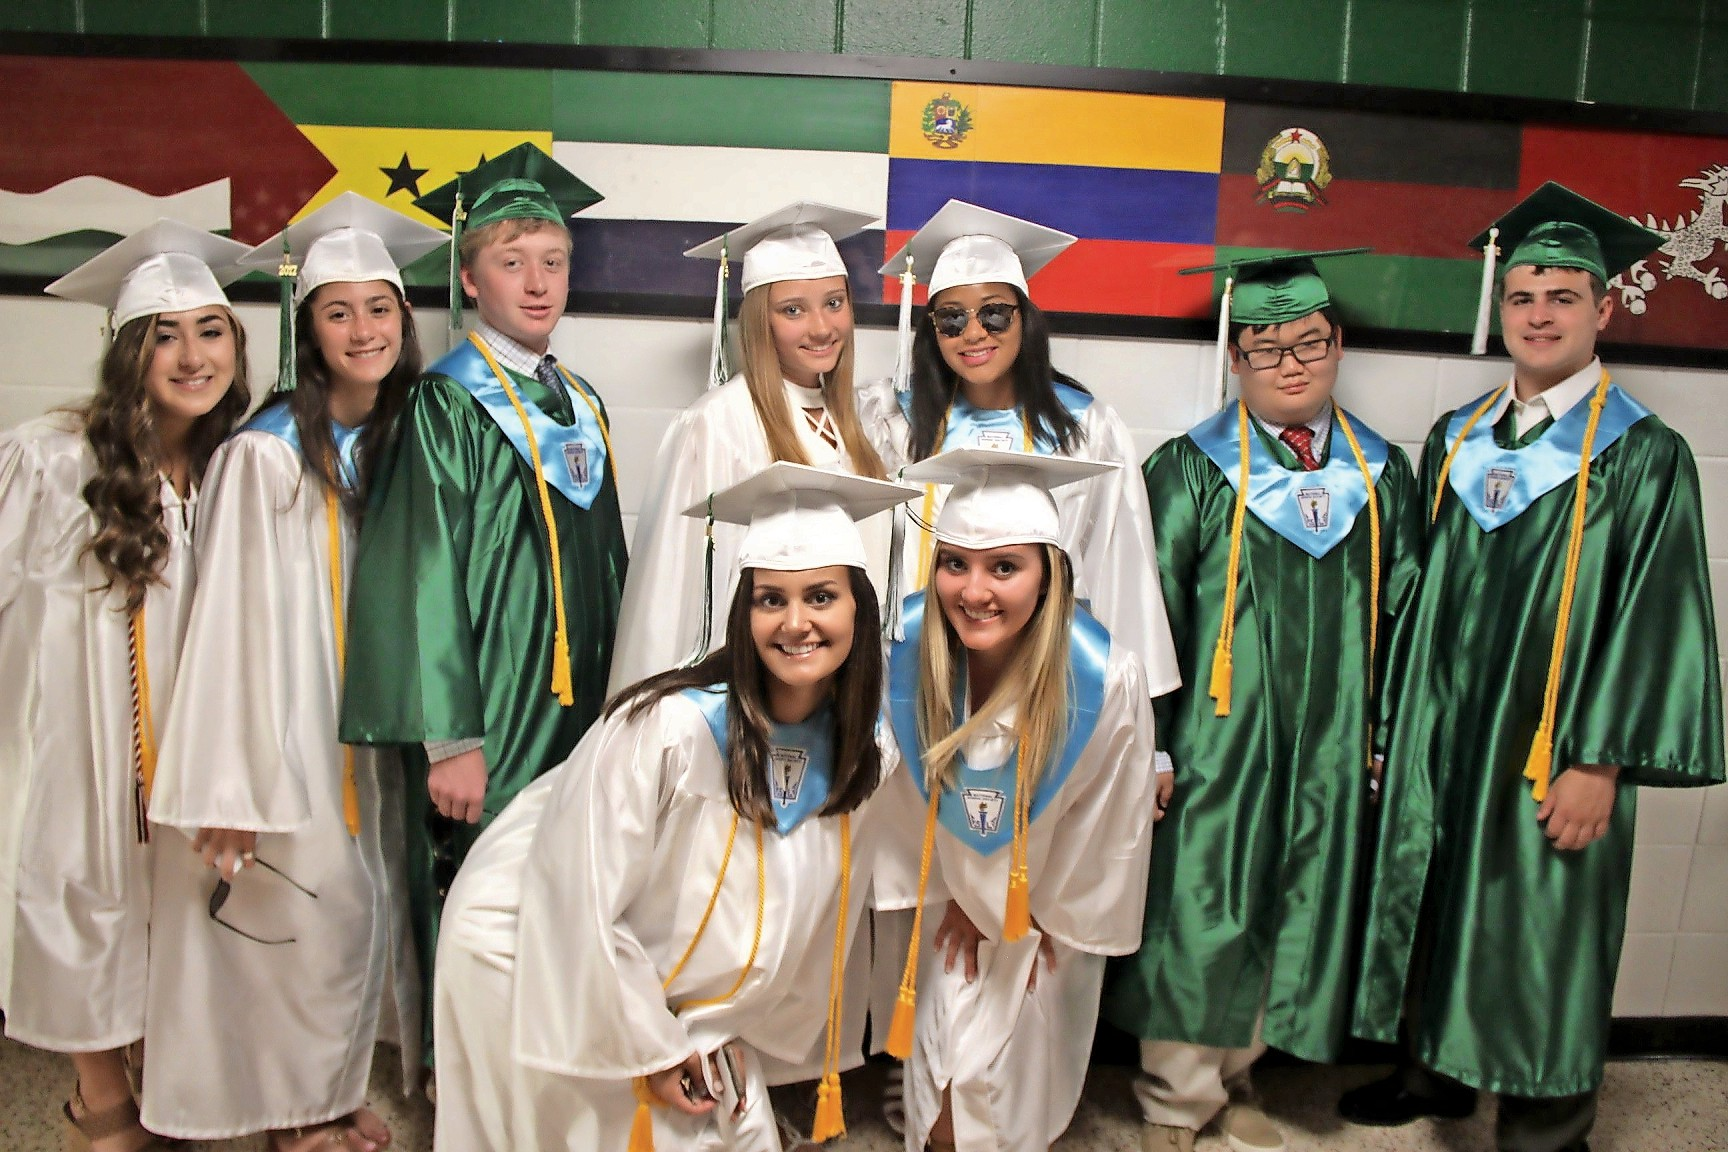 A group of very happy graduates from Locust Valley High School.